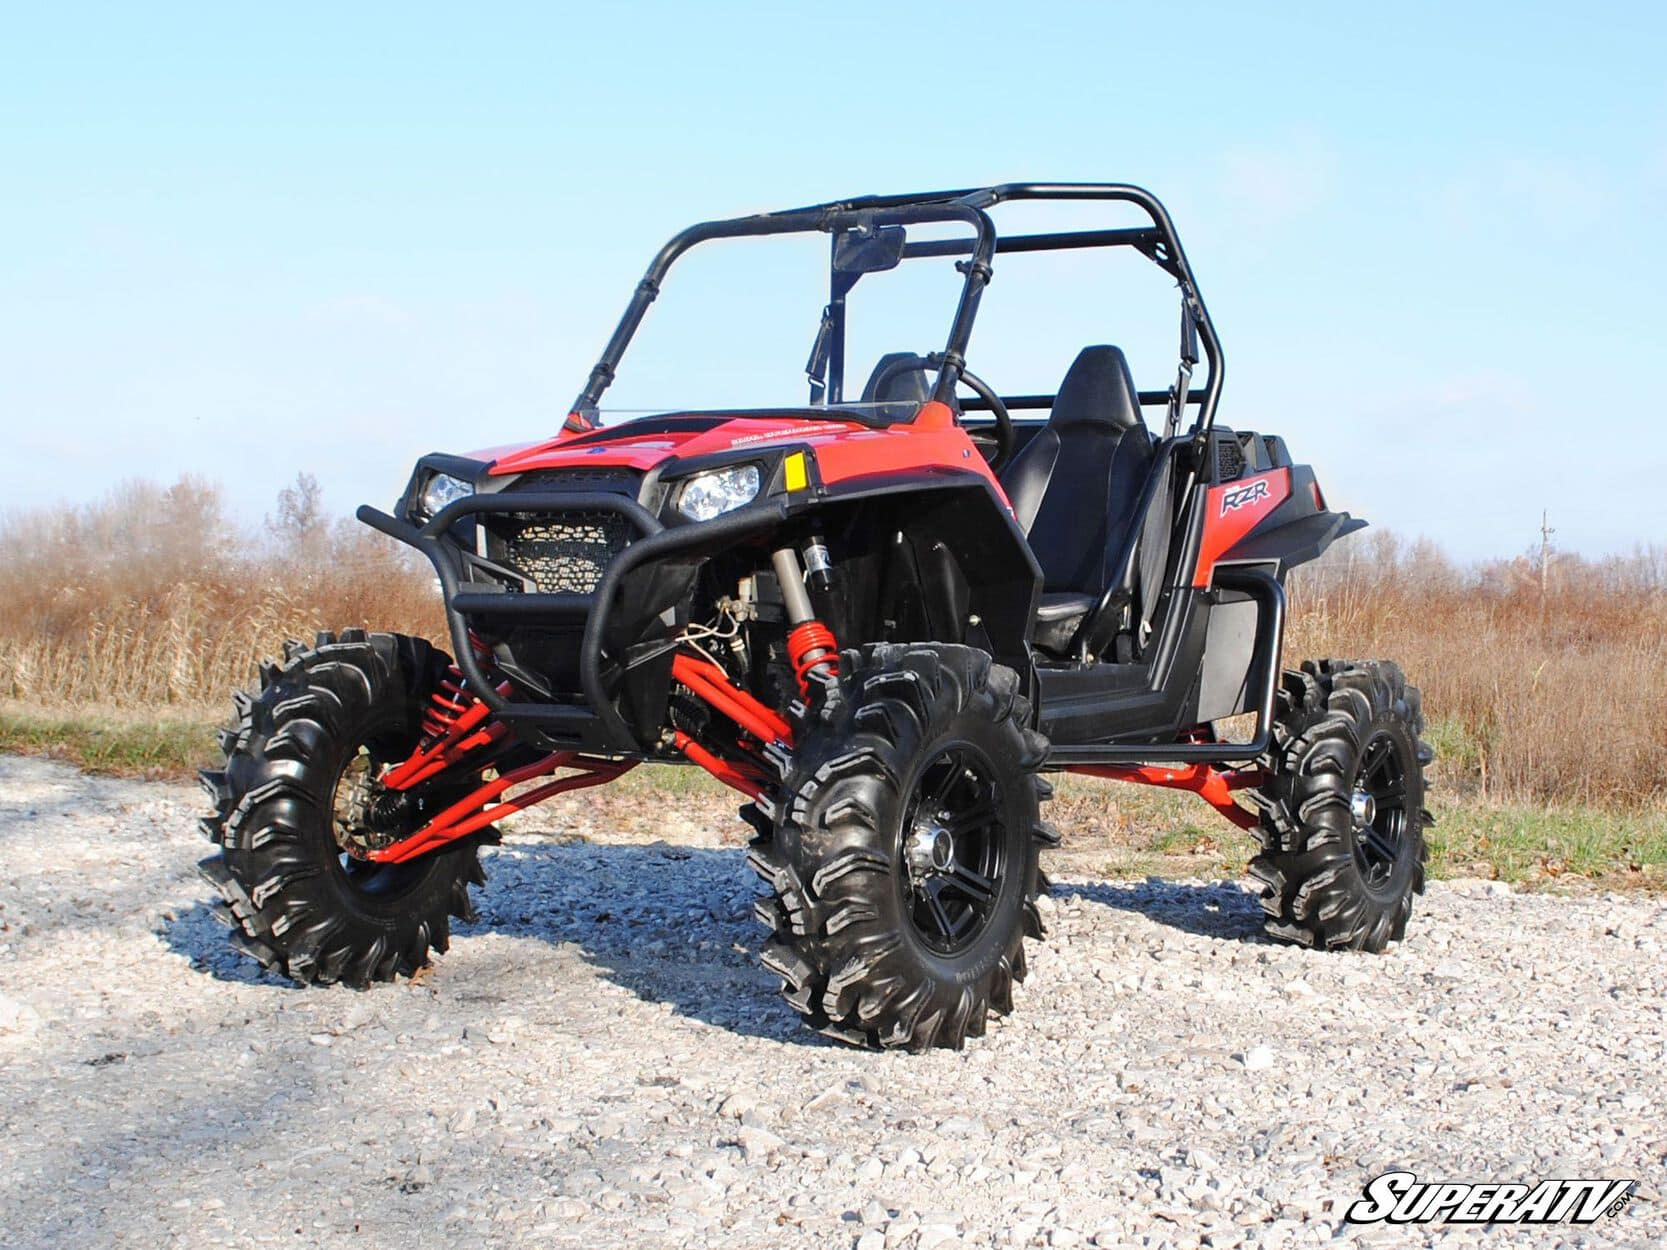 hight resolution of super atv 6 lift kit polaris rzr xp 900